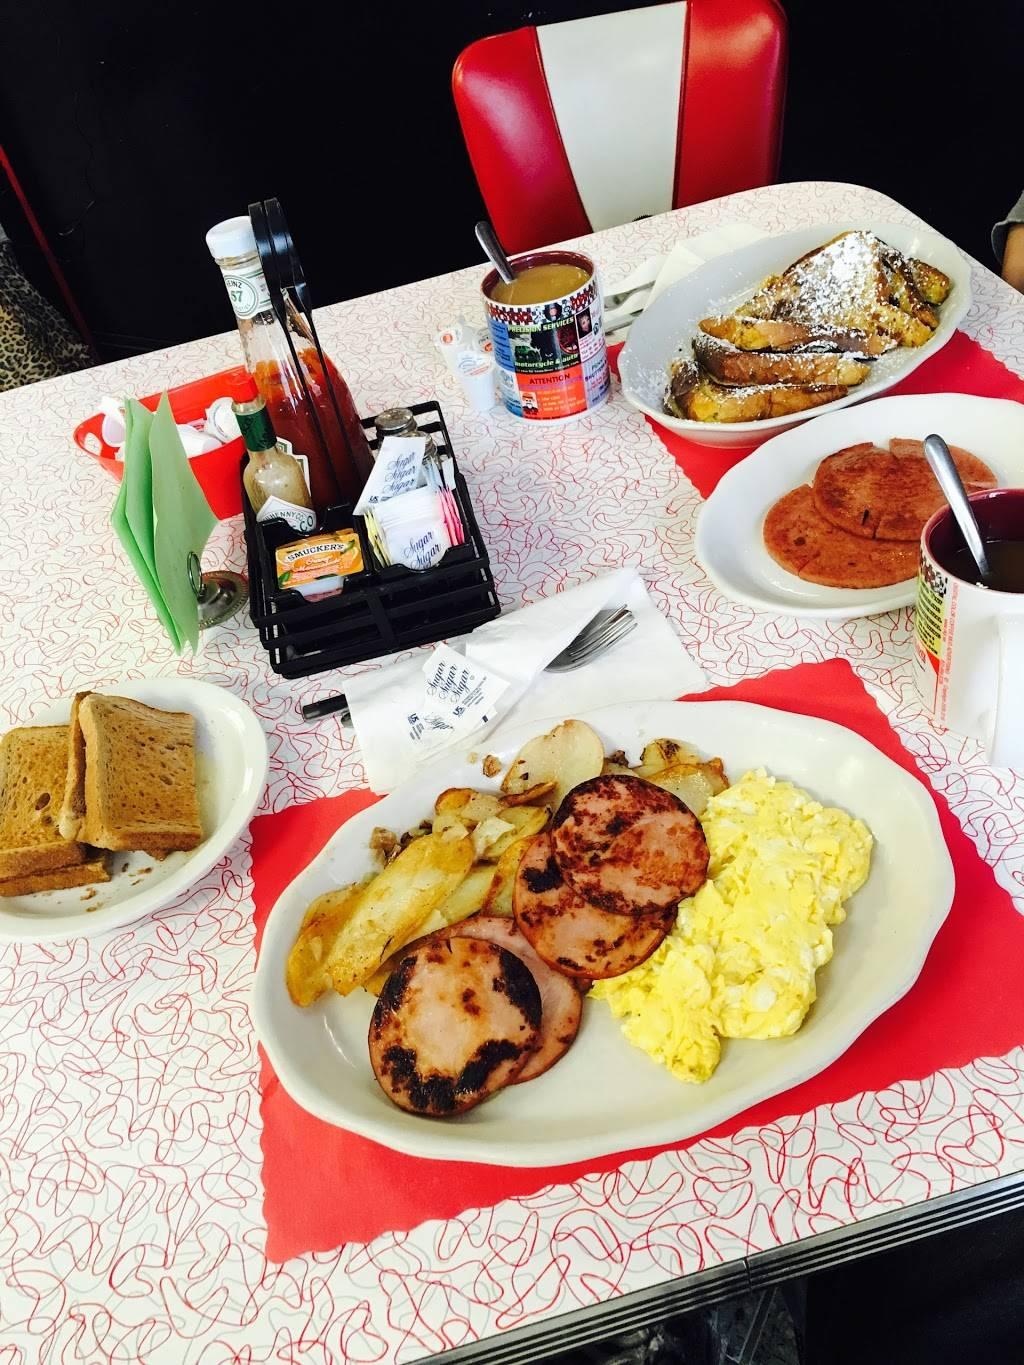 POPPYS PLACE | restaurant | 290 W Water St, Toms River, NJ 08753, USA | 7325034313 OR +1 732-503-4313